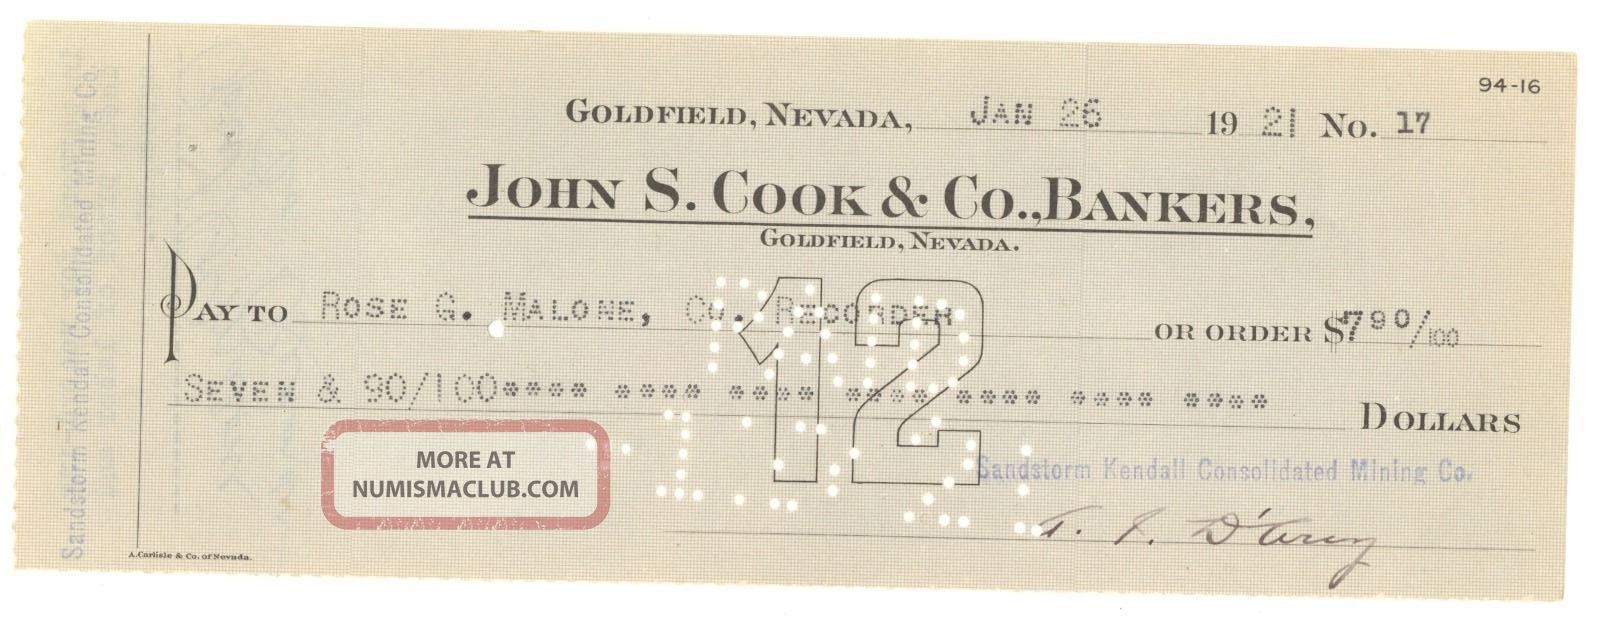 1921 Sandstorm - Kendall Consolidated Mining Co.  - Check 17 - Goldfield,  Nv Stocks & Bonds, Scripophily photo